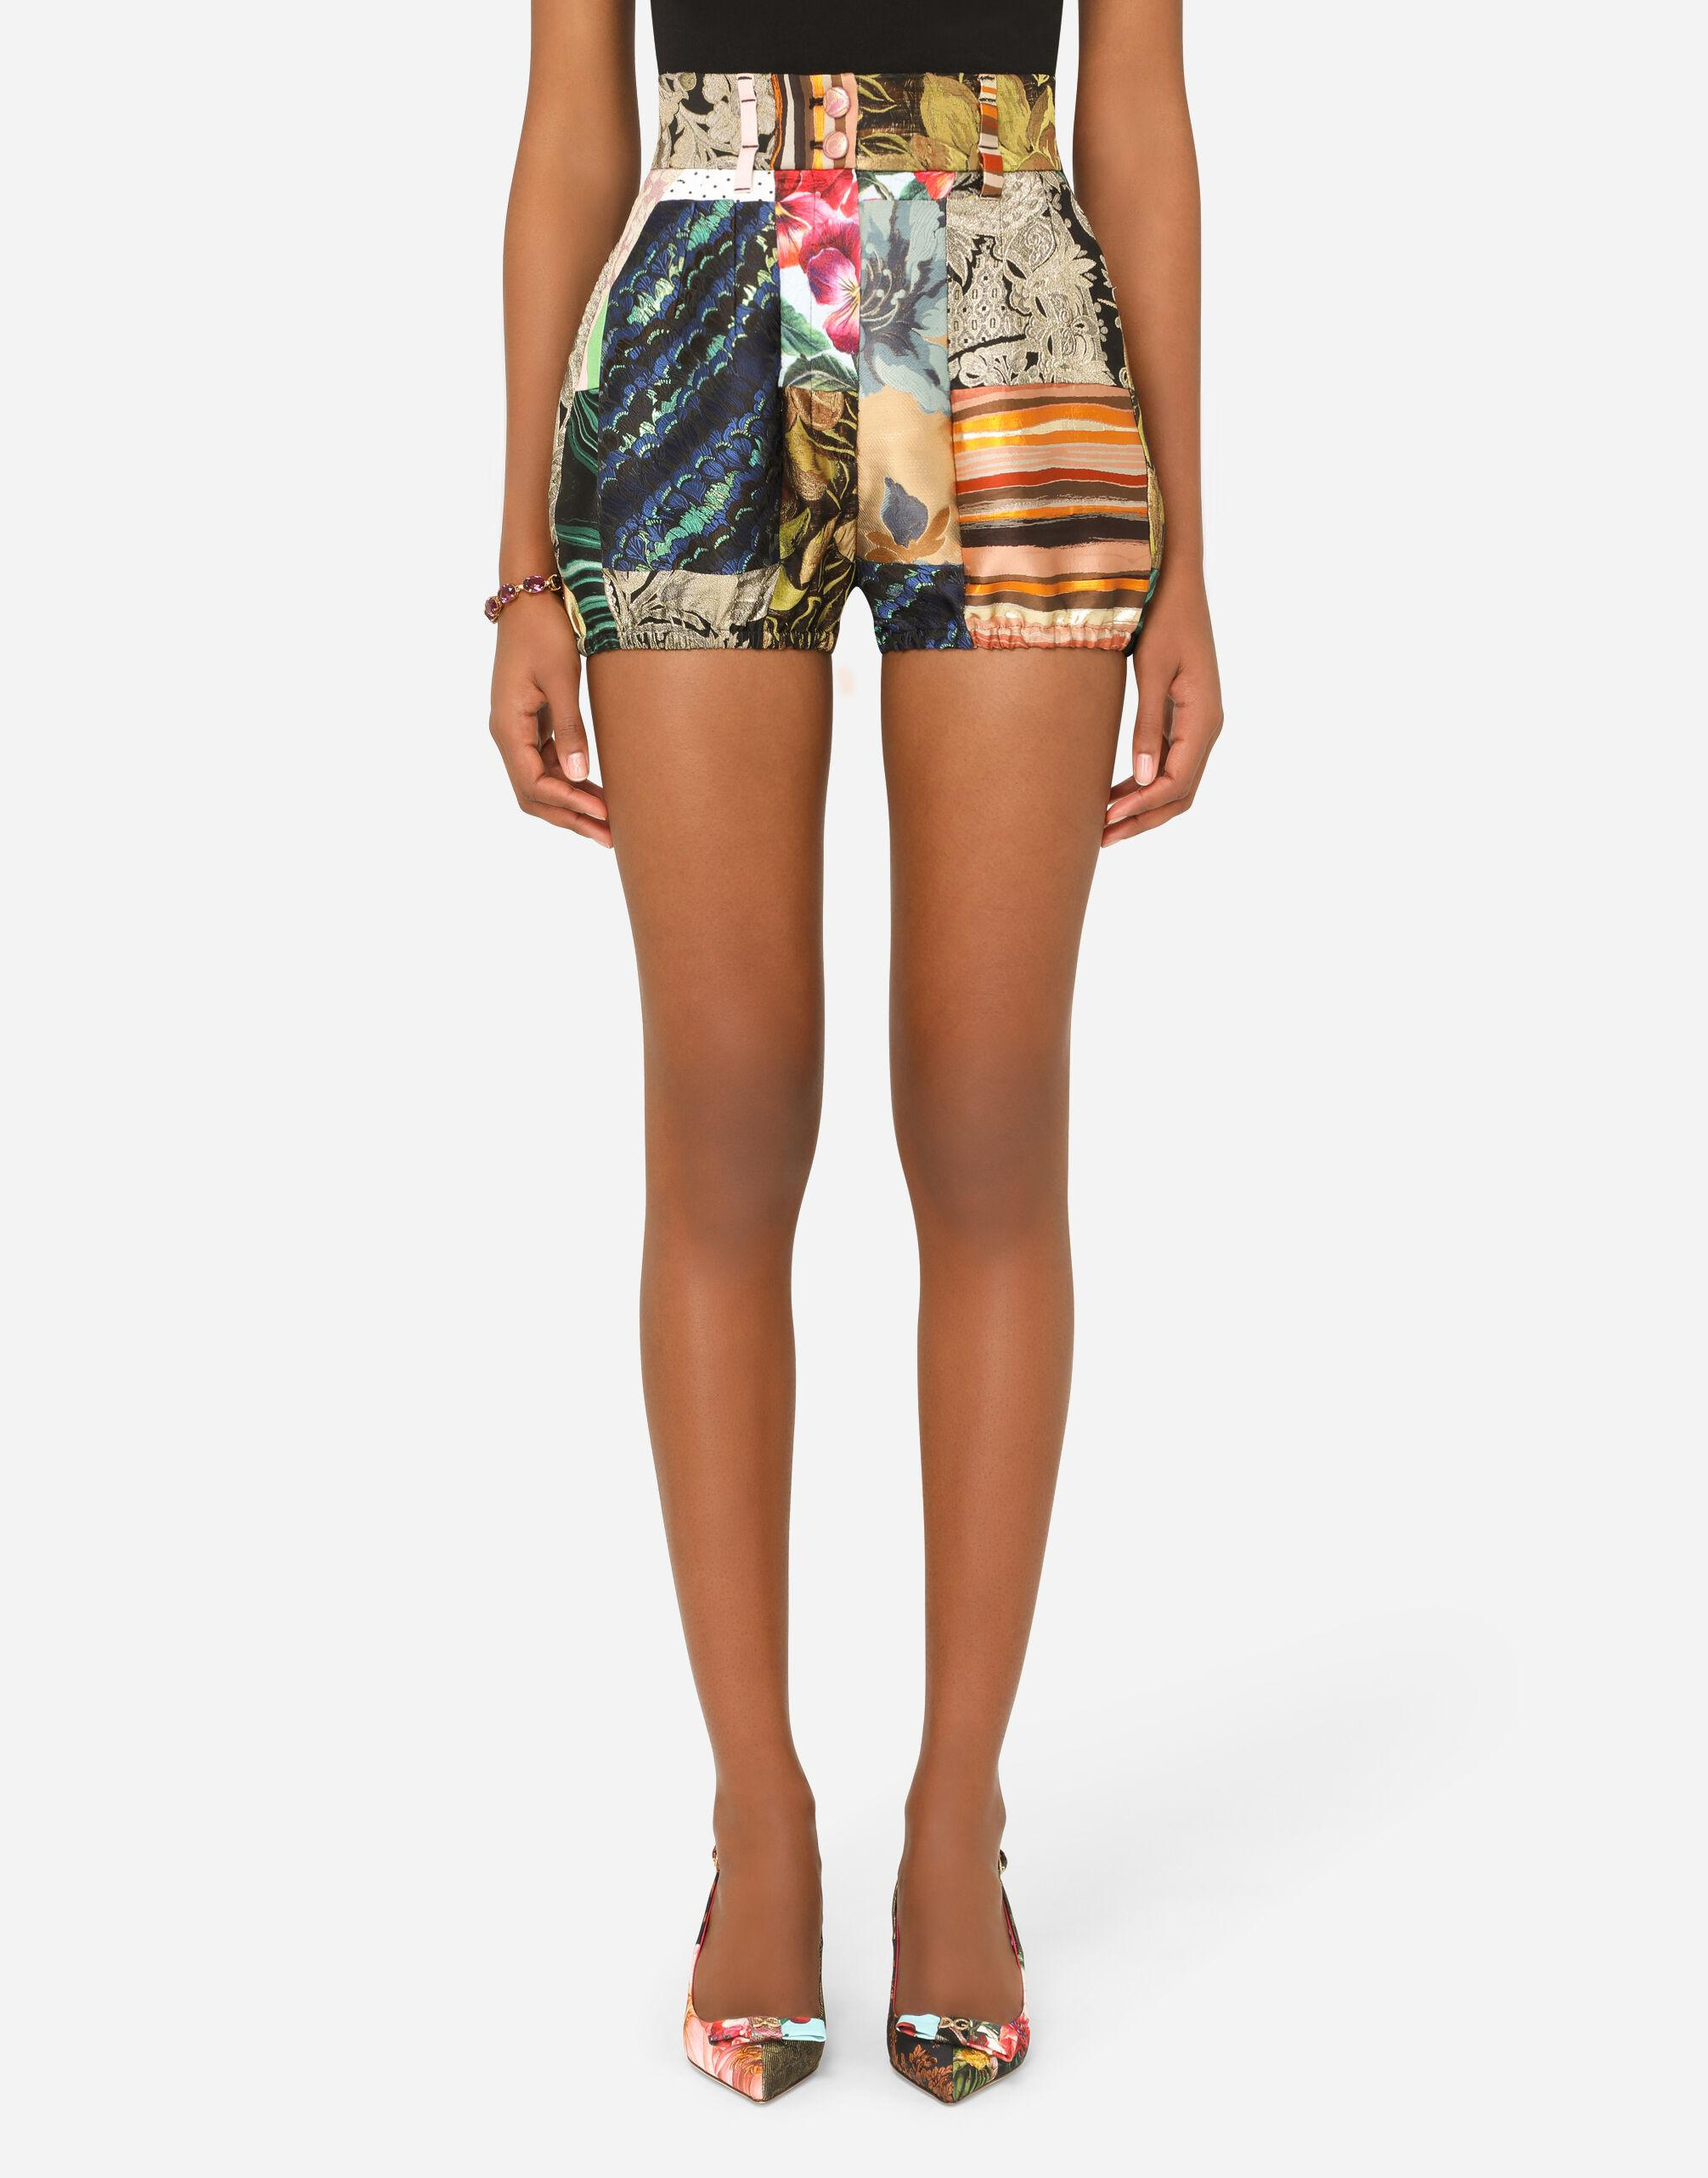 Patchwork panties in patchwork twill and brocade jacquard